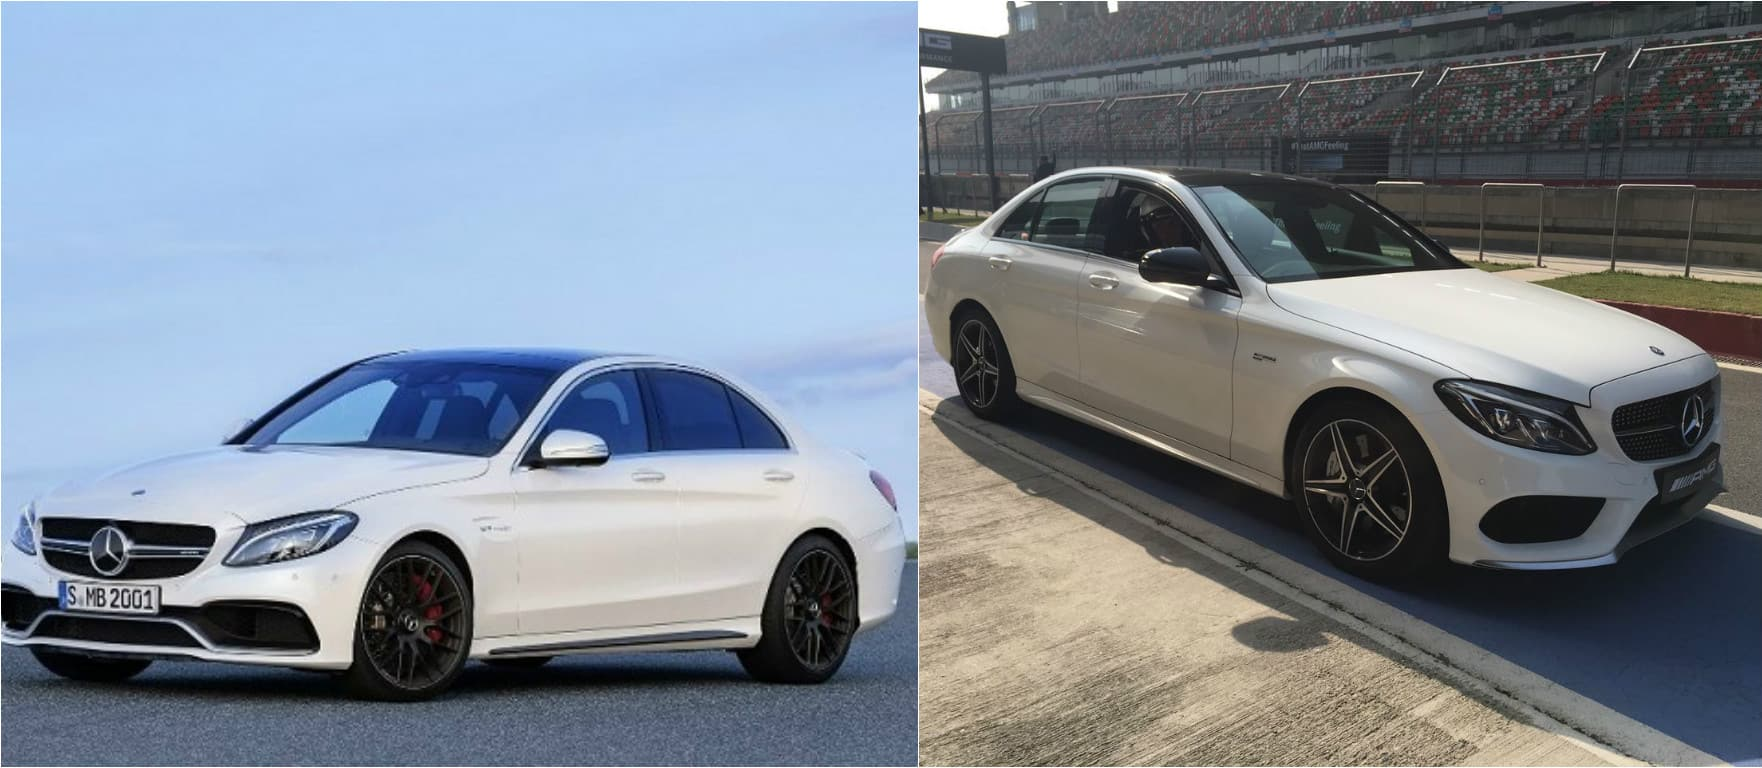 New Mercedes-Benz C43 AMG Vs C63 S AMG; Basic Differences